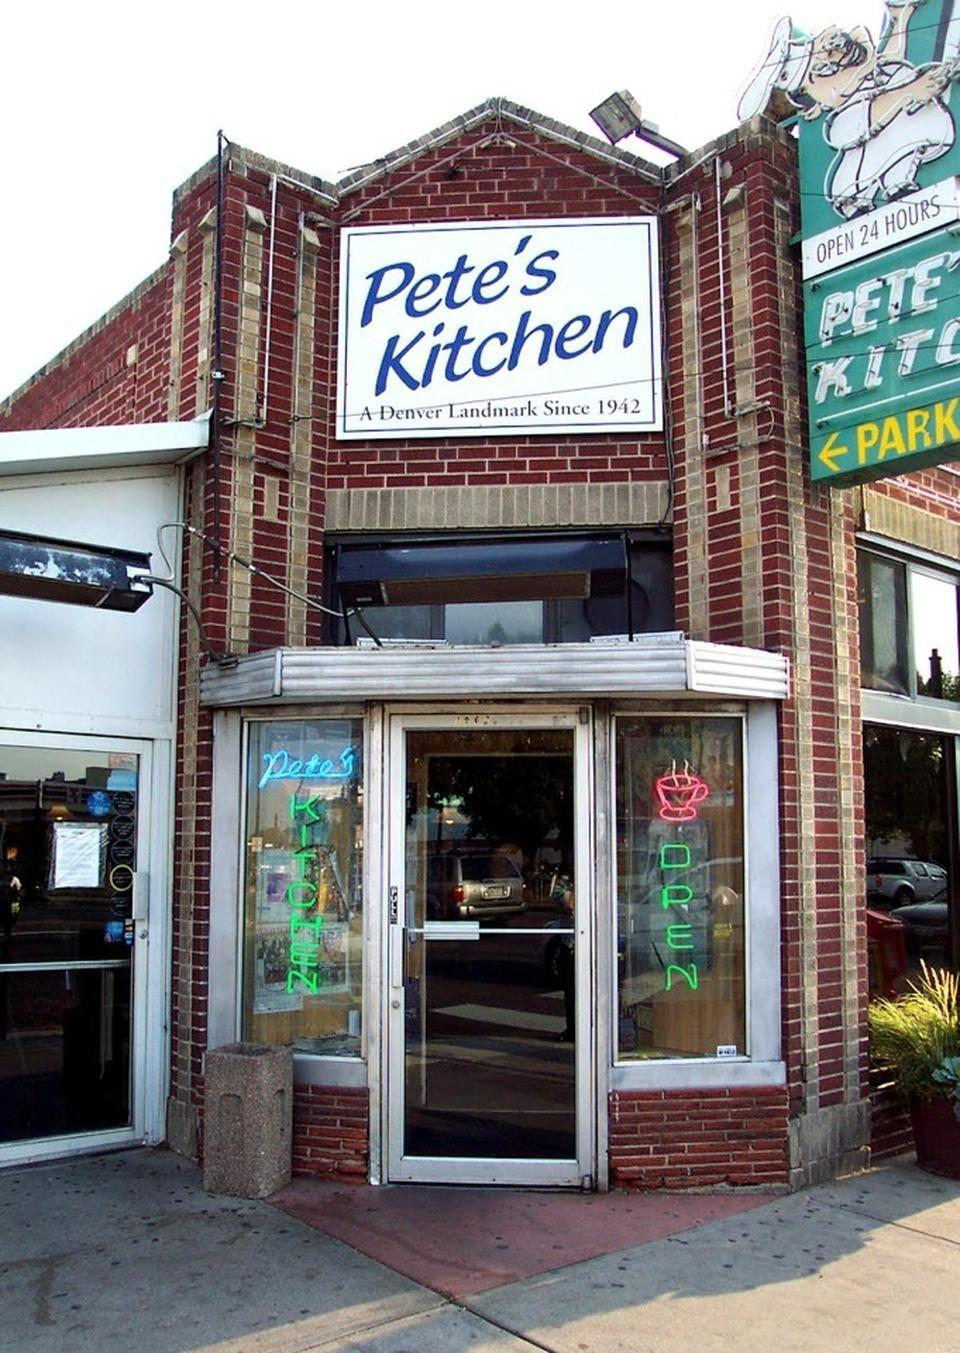 "<p><a href=""https://www.tripadvisor.com/Restaurant_Review-g33388-d379382-Reviews-Pete_s_Kitchen-Denver_Colorado.html"" rel=""nofollow noopener"" target=""_blank"" data-ylk=""slk:Pete's Kitchen"" class=""link rapid-noclick-resp"">Pete's Kitchen</a>, Denver</p><p>""Ask for cheese with your bowl of chili<span class=""redactor-invisible-space"">."" -Foursquare user <a href=""https://foursquare.com/hannahbalrising"" rel=""nofollow noopener"" target=""_blank"" data-ylk=""slk:Hannah Garret"" class=""link rapid-noclick-resp"">Hannah Garret</a></span></p>"